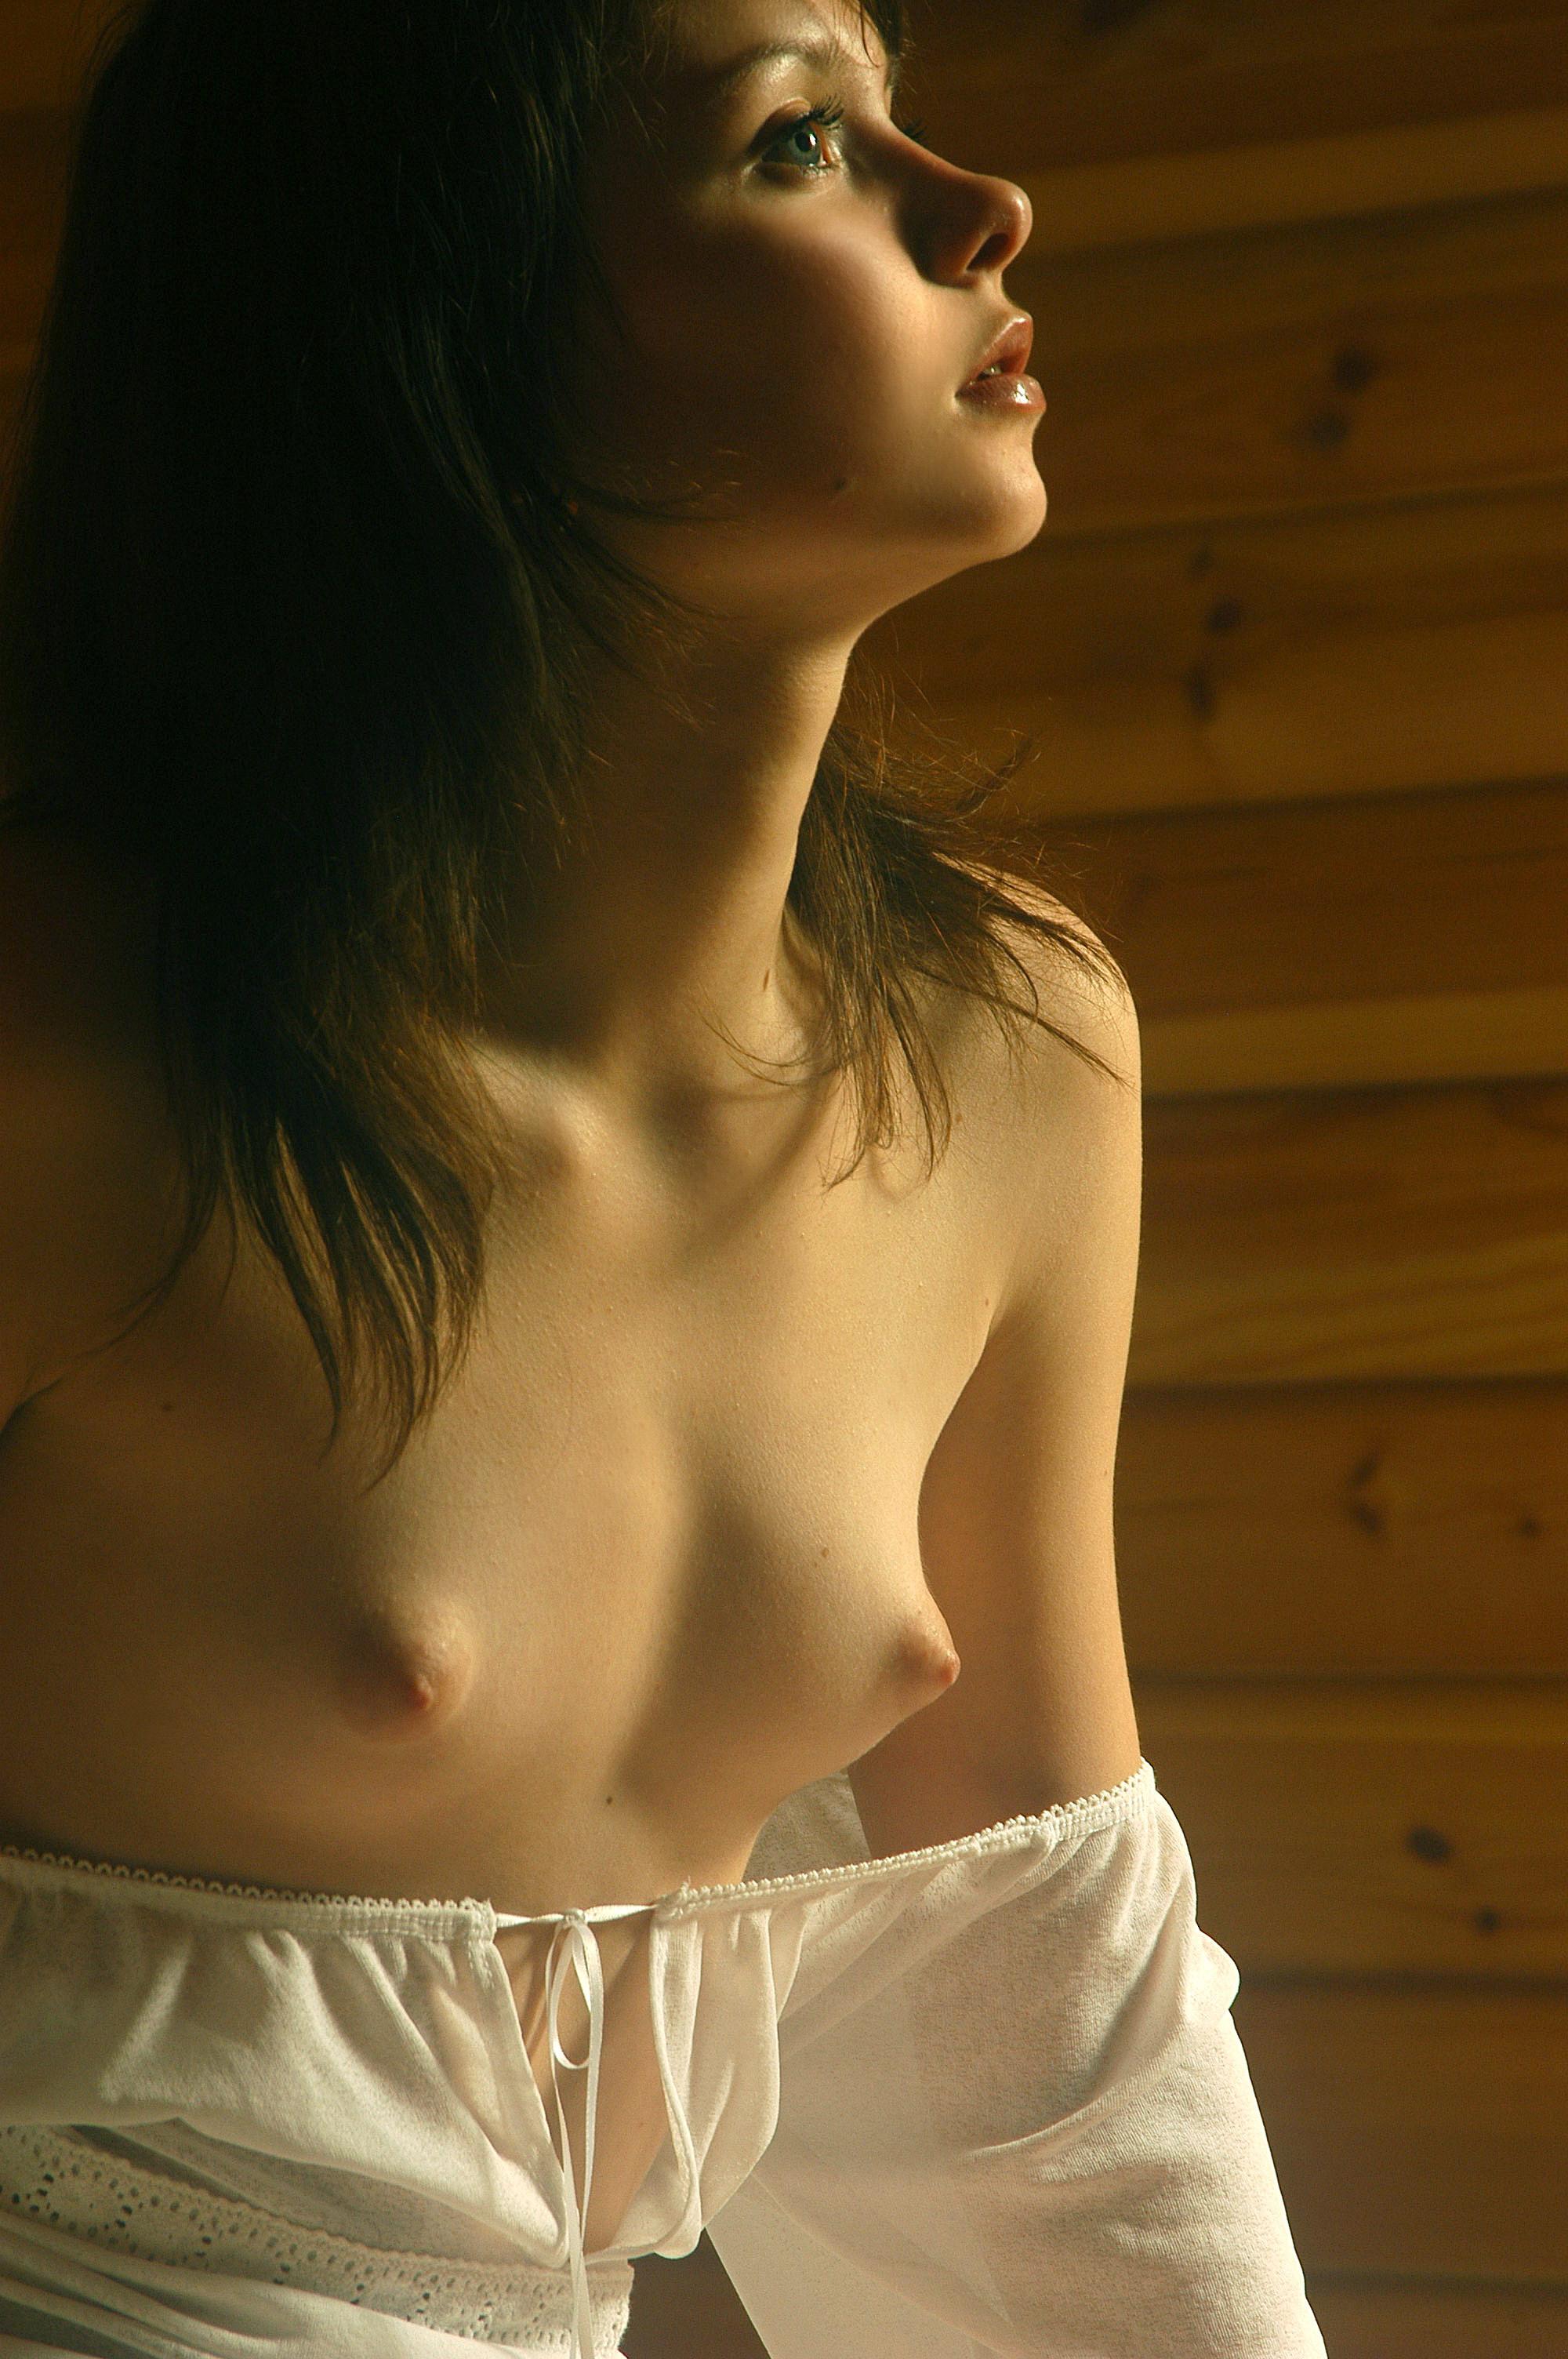 Click to view full gallery